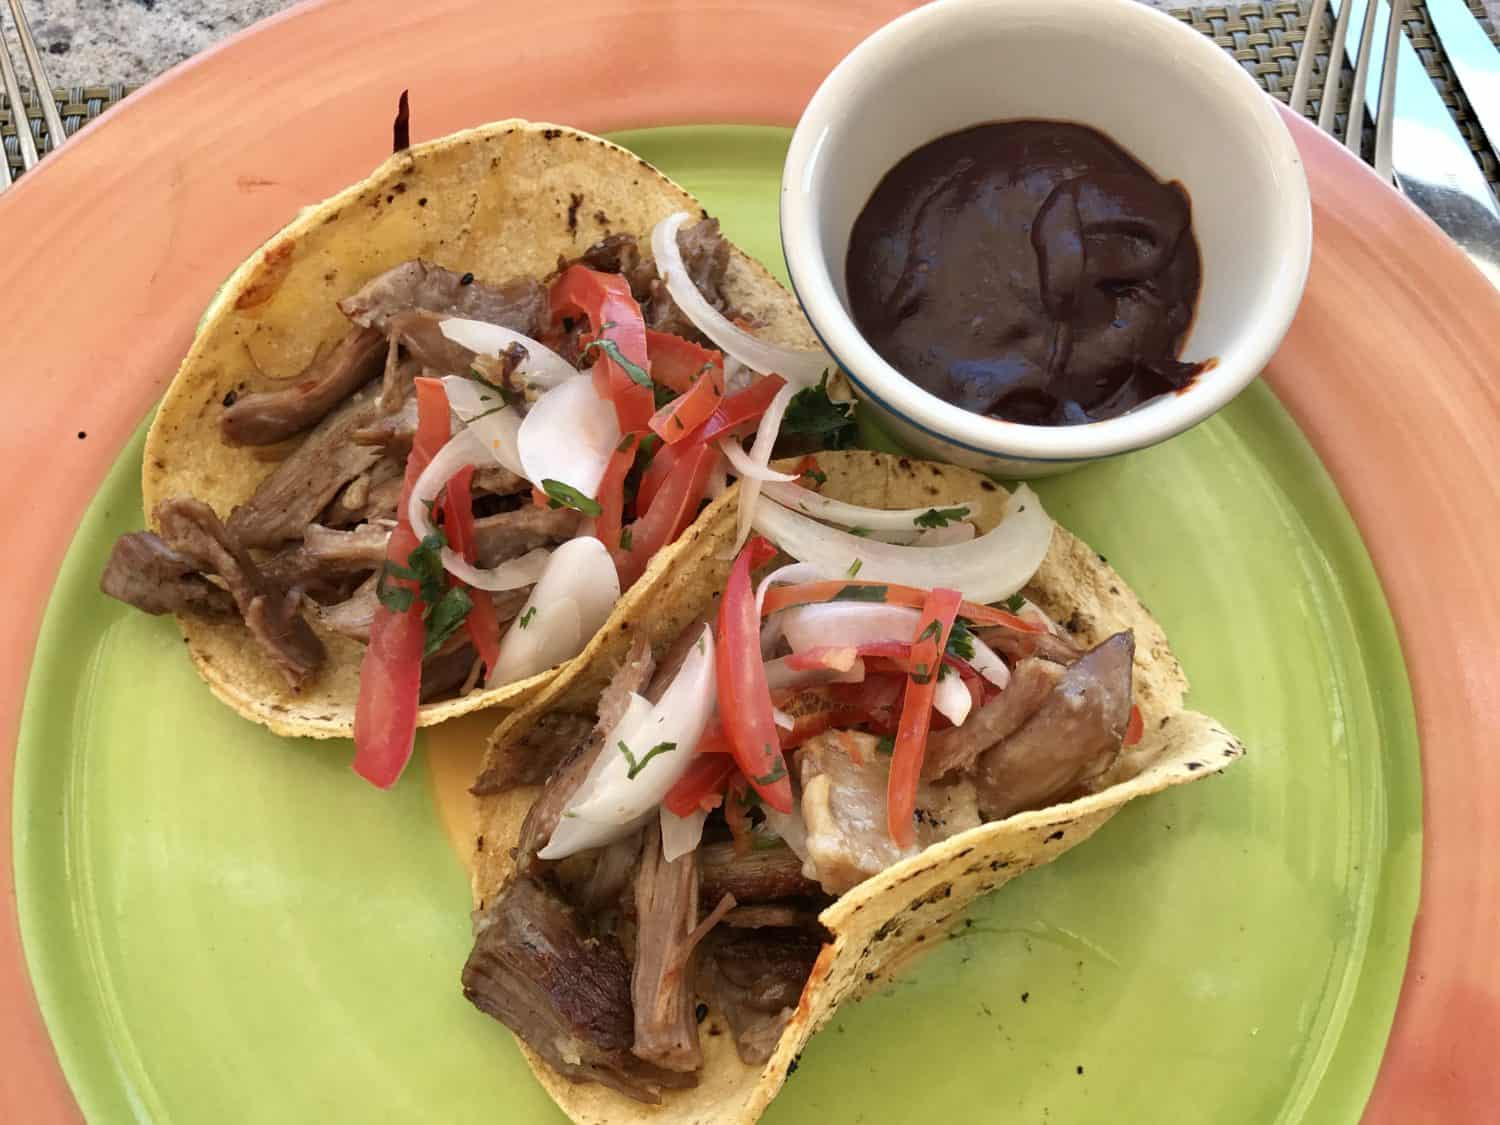 My thoughts on the food at Royal Hideaway Playacar, my first all-inclusive resort experience